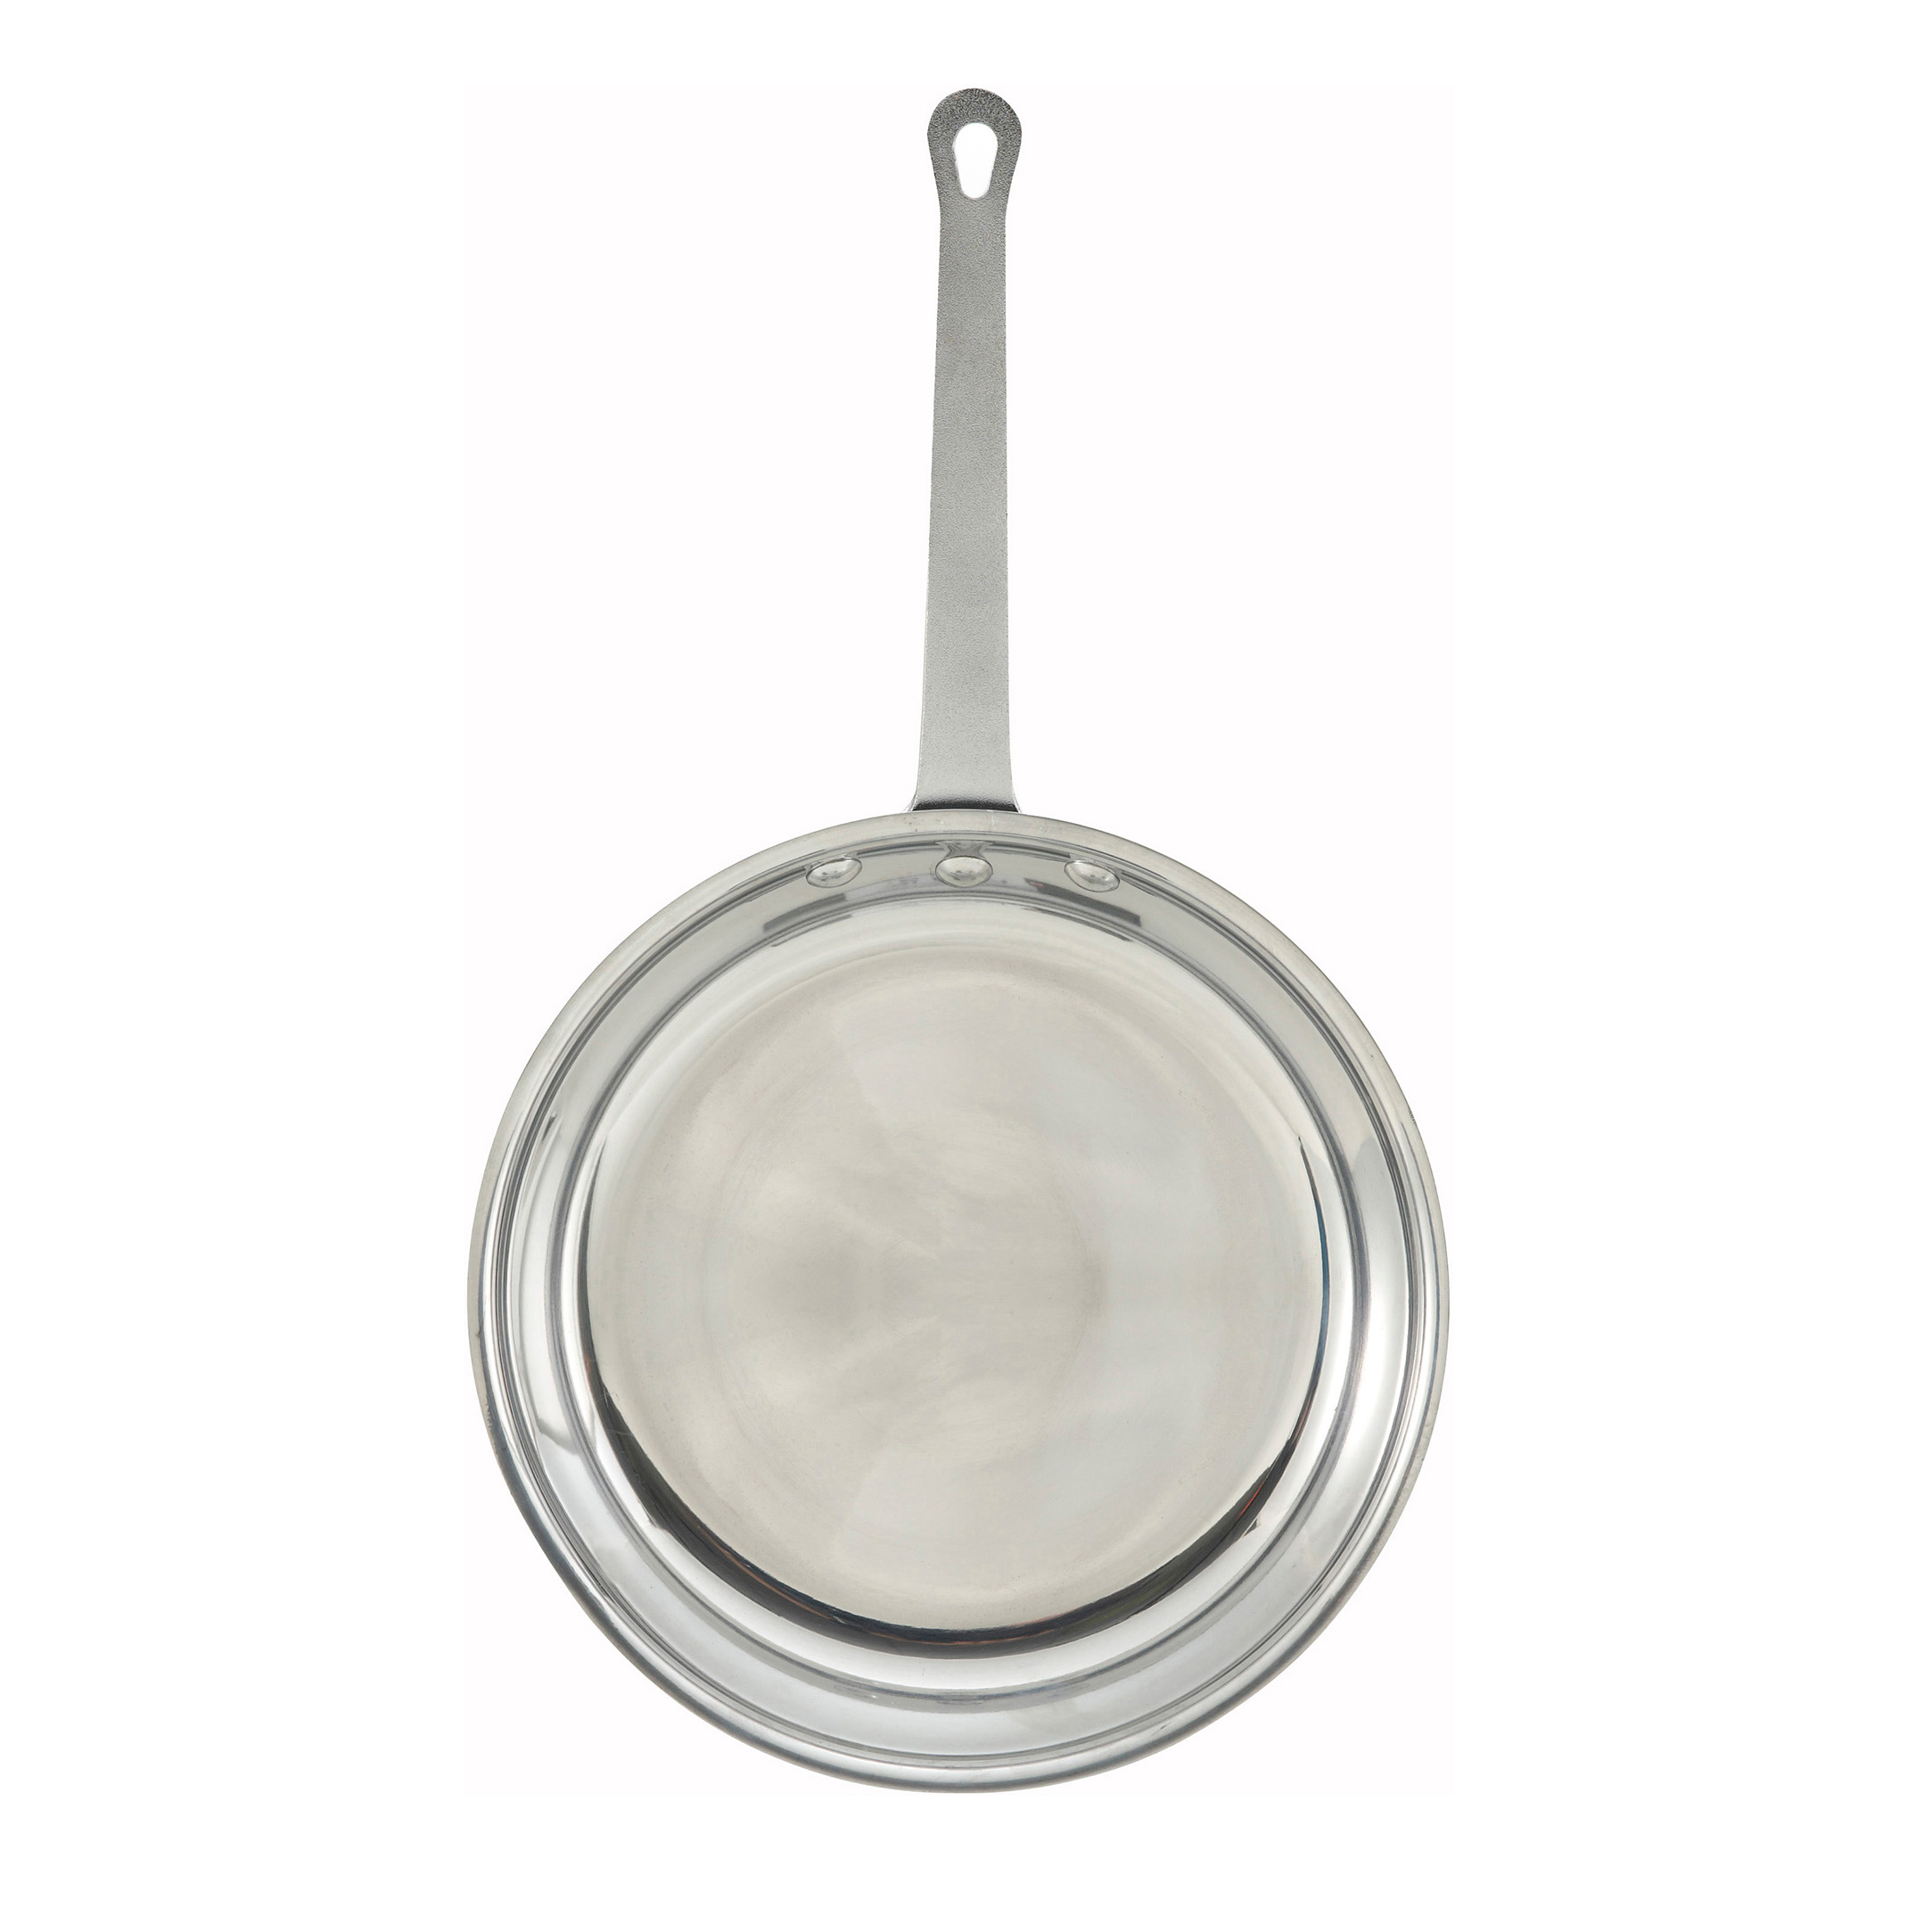 Winco AFP-8 fry pan